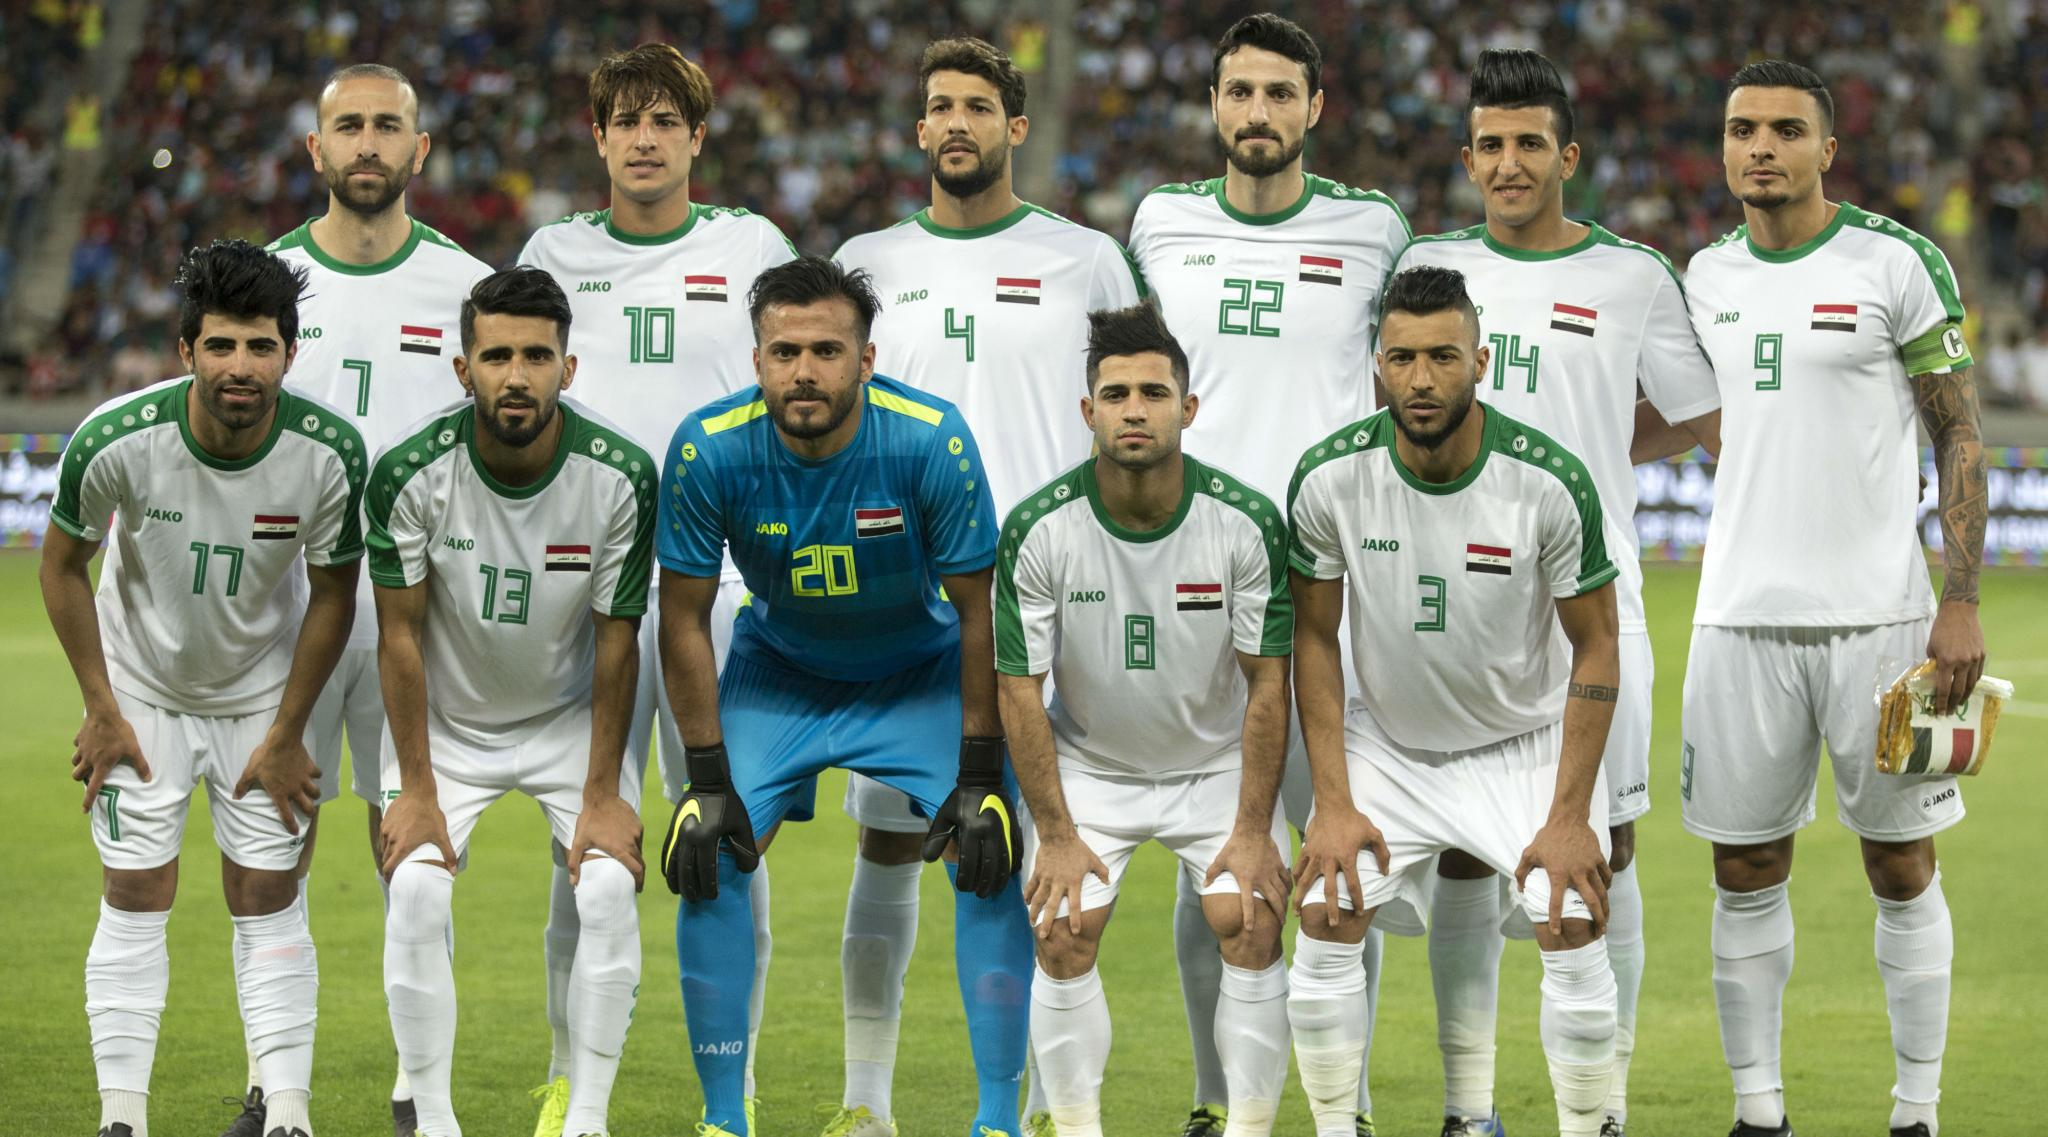 Iraq Aims to Revive Protests Against Baghdad Government With Iran Football Match in 2022 World Cup Qualifiers